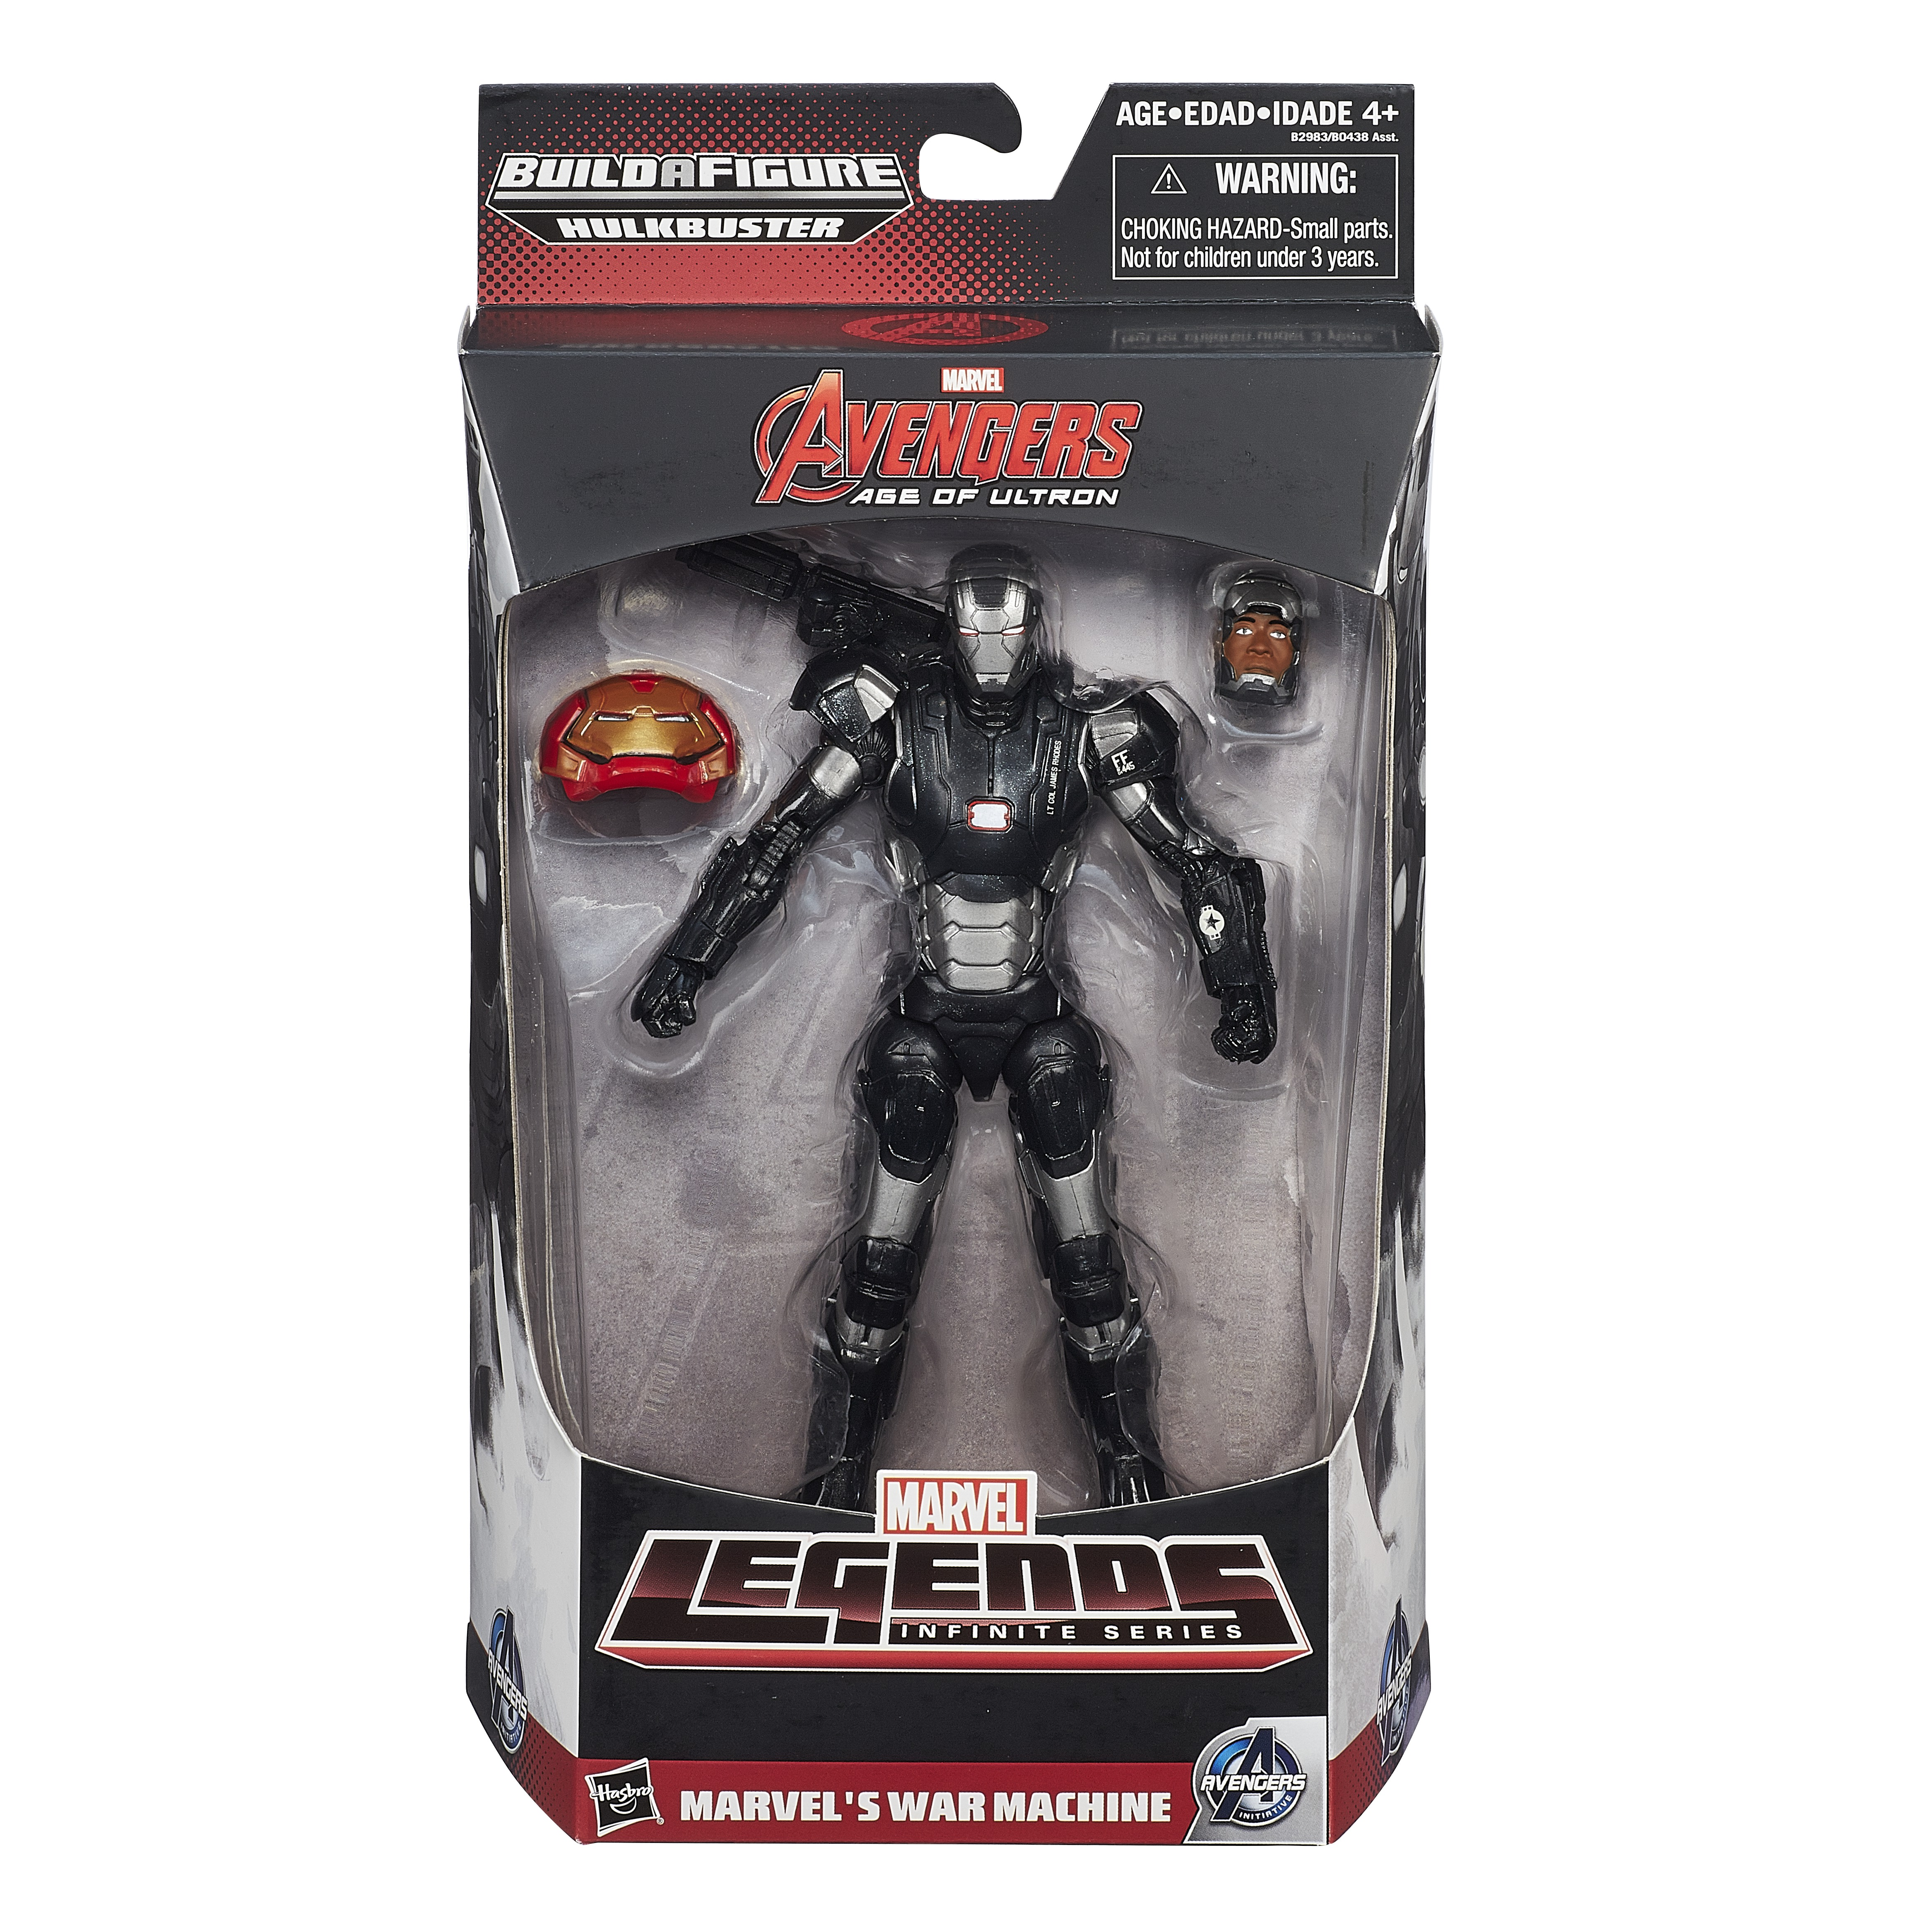 Hasbro Marvel Legends Hulkbuster Series